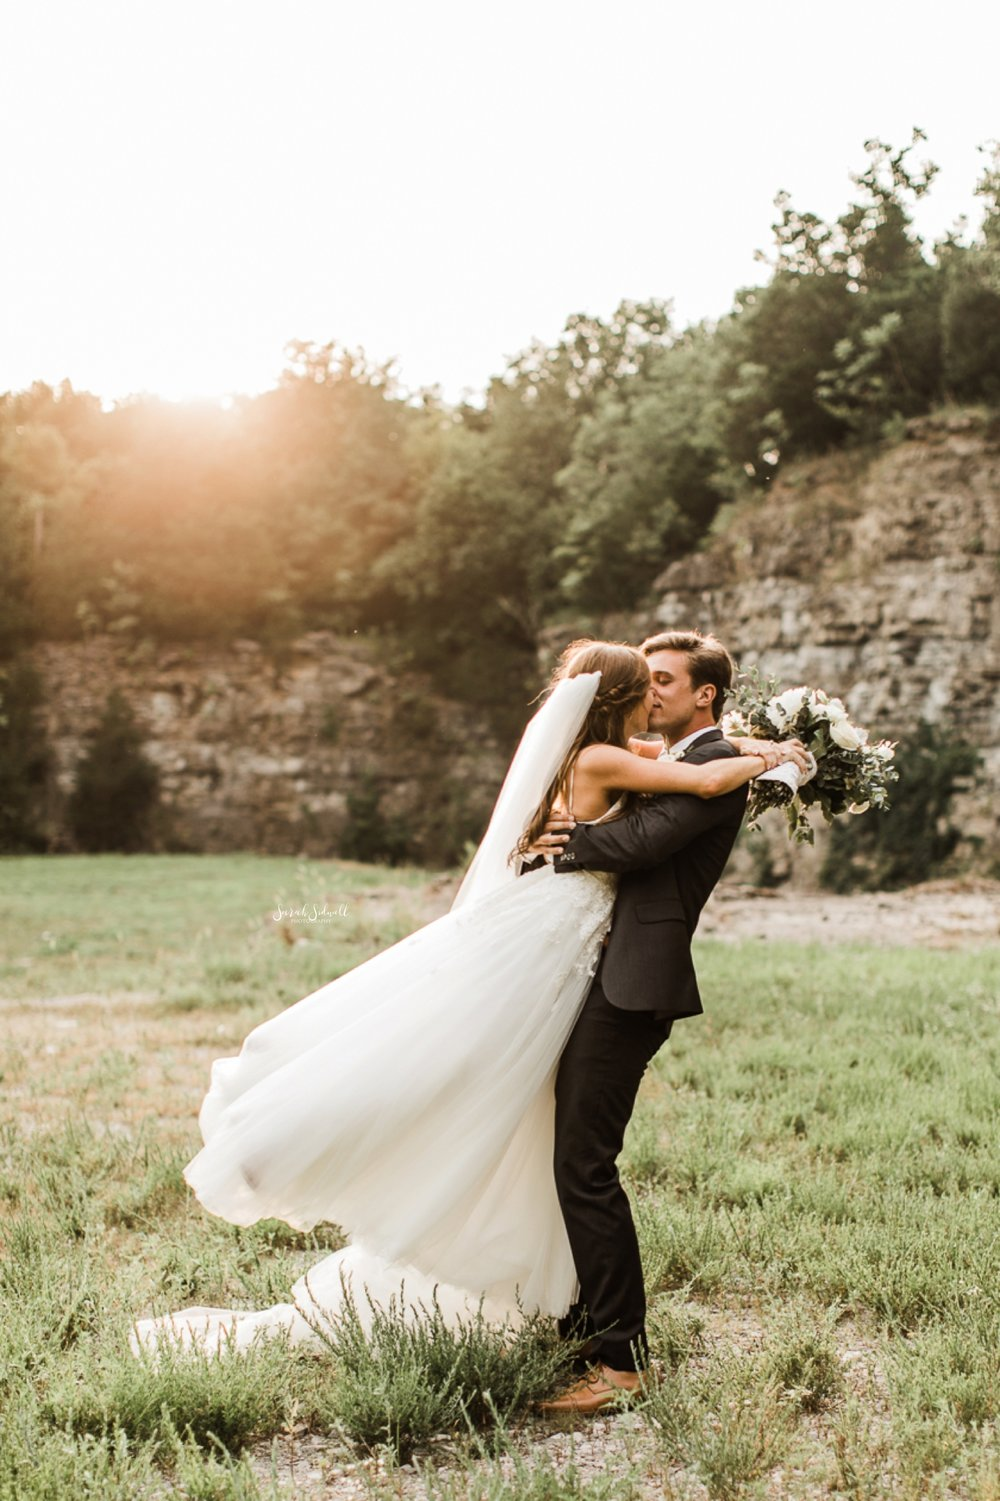 A bride jumps into the arms of her groom.